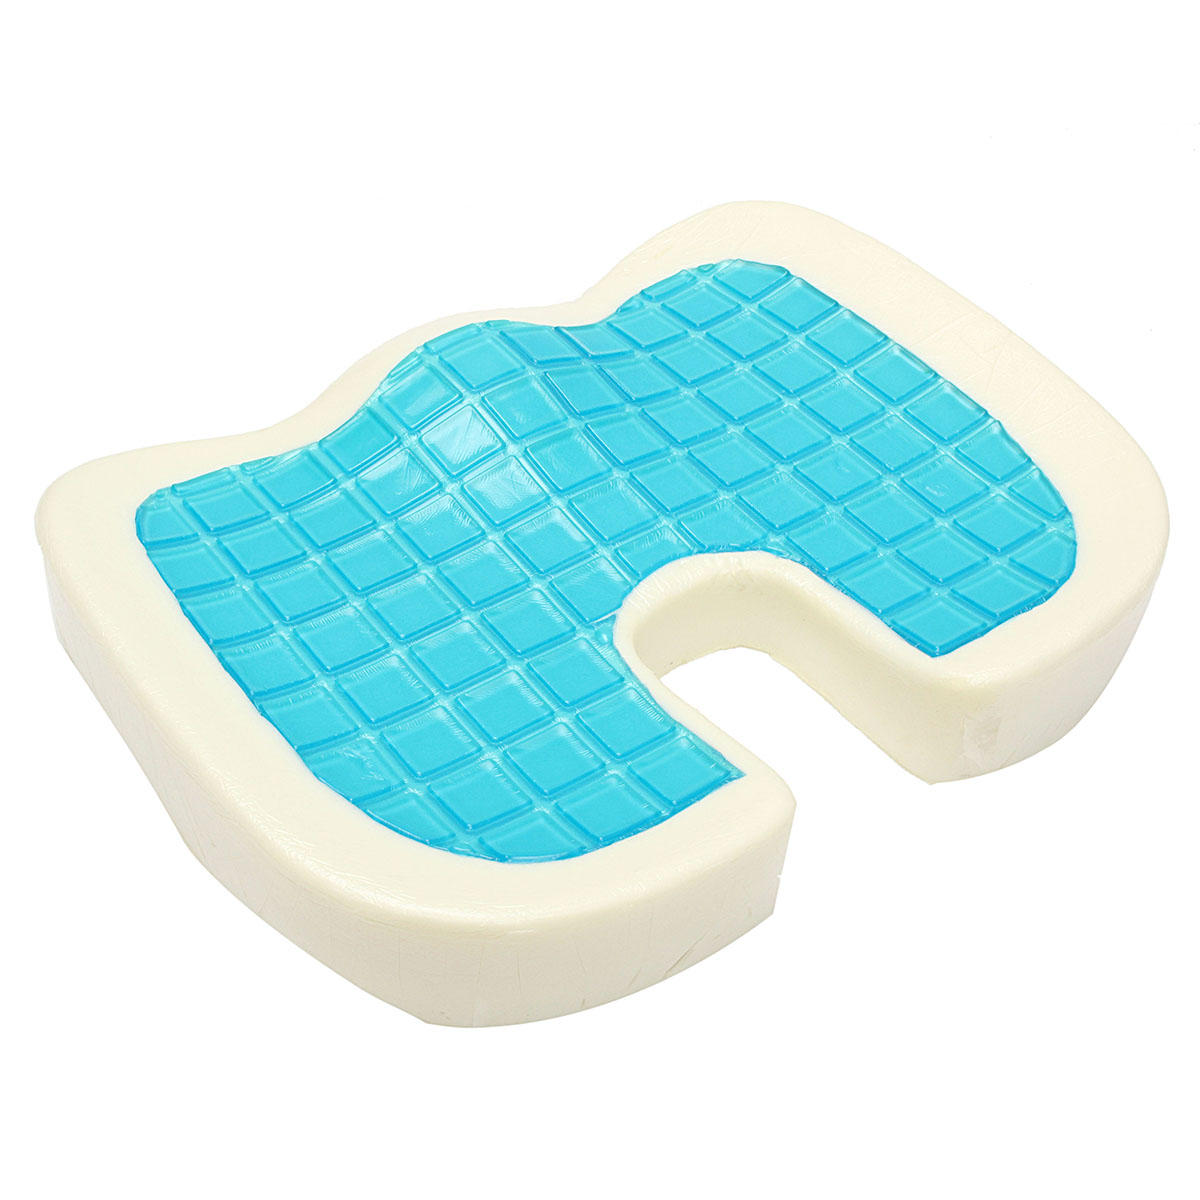 Cooling Memory Foam  Orthopedic Seat Back Support Cushion Pain Relief Buttocks Shaping Pillow